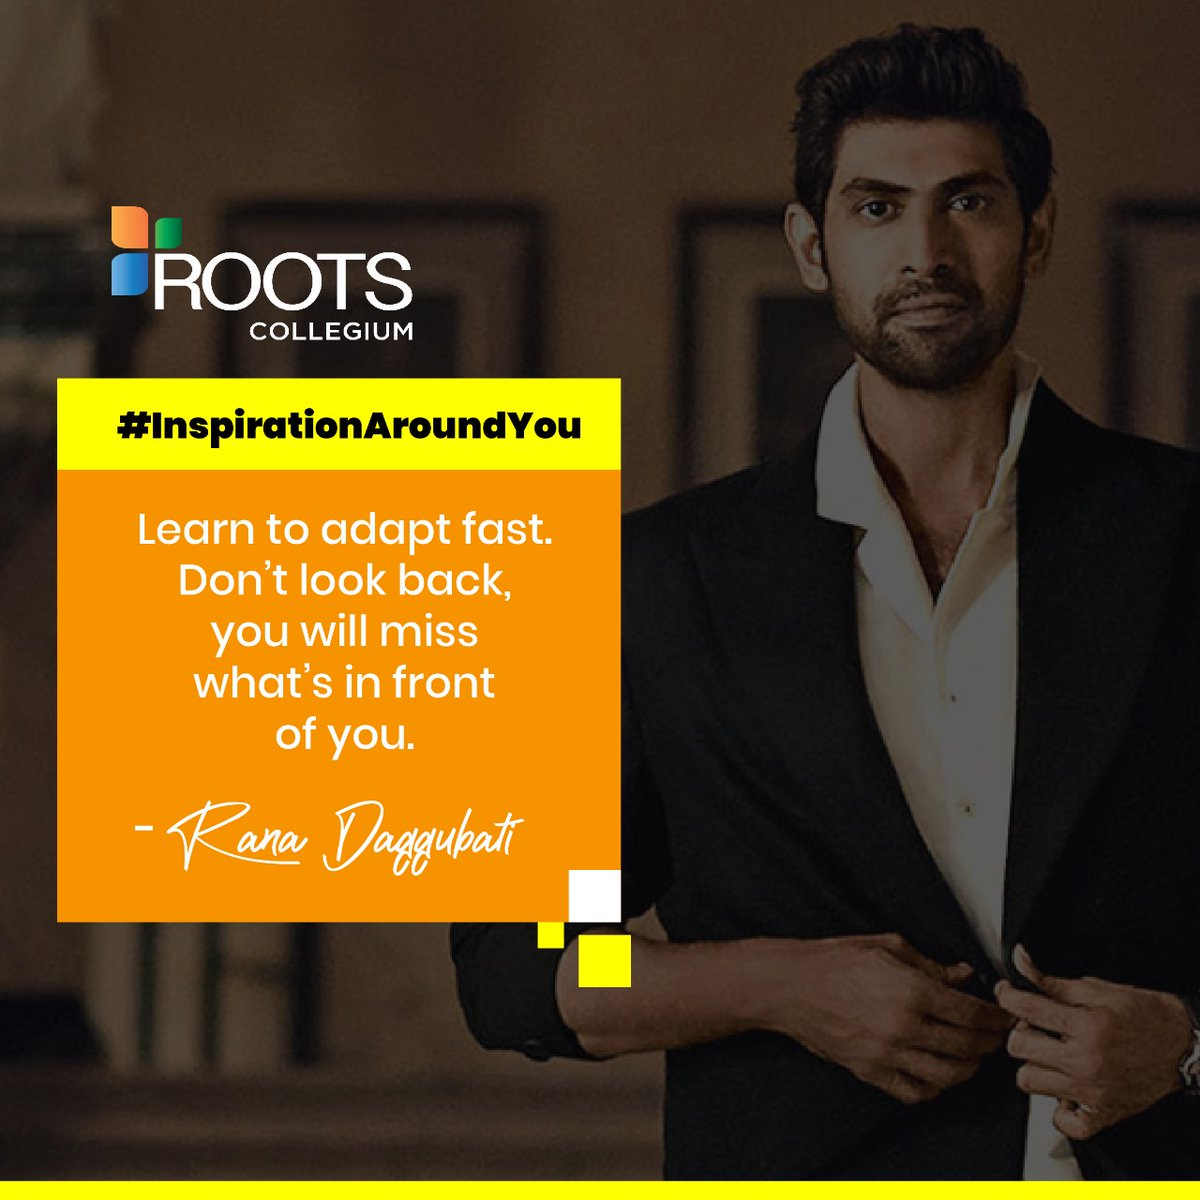 Follow your passion and don't be stuck in your past is the key inspiration which we can take from the journey of Rana Daggubati as an actor, producer and entrepreneur. #ROOTSCollegium #ROOTSHyderabad #wednesdaywisdom #InspirationAroundYoupic.twitter.com/J0GamJwIzh